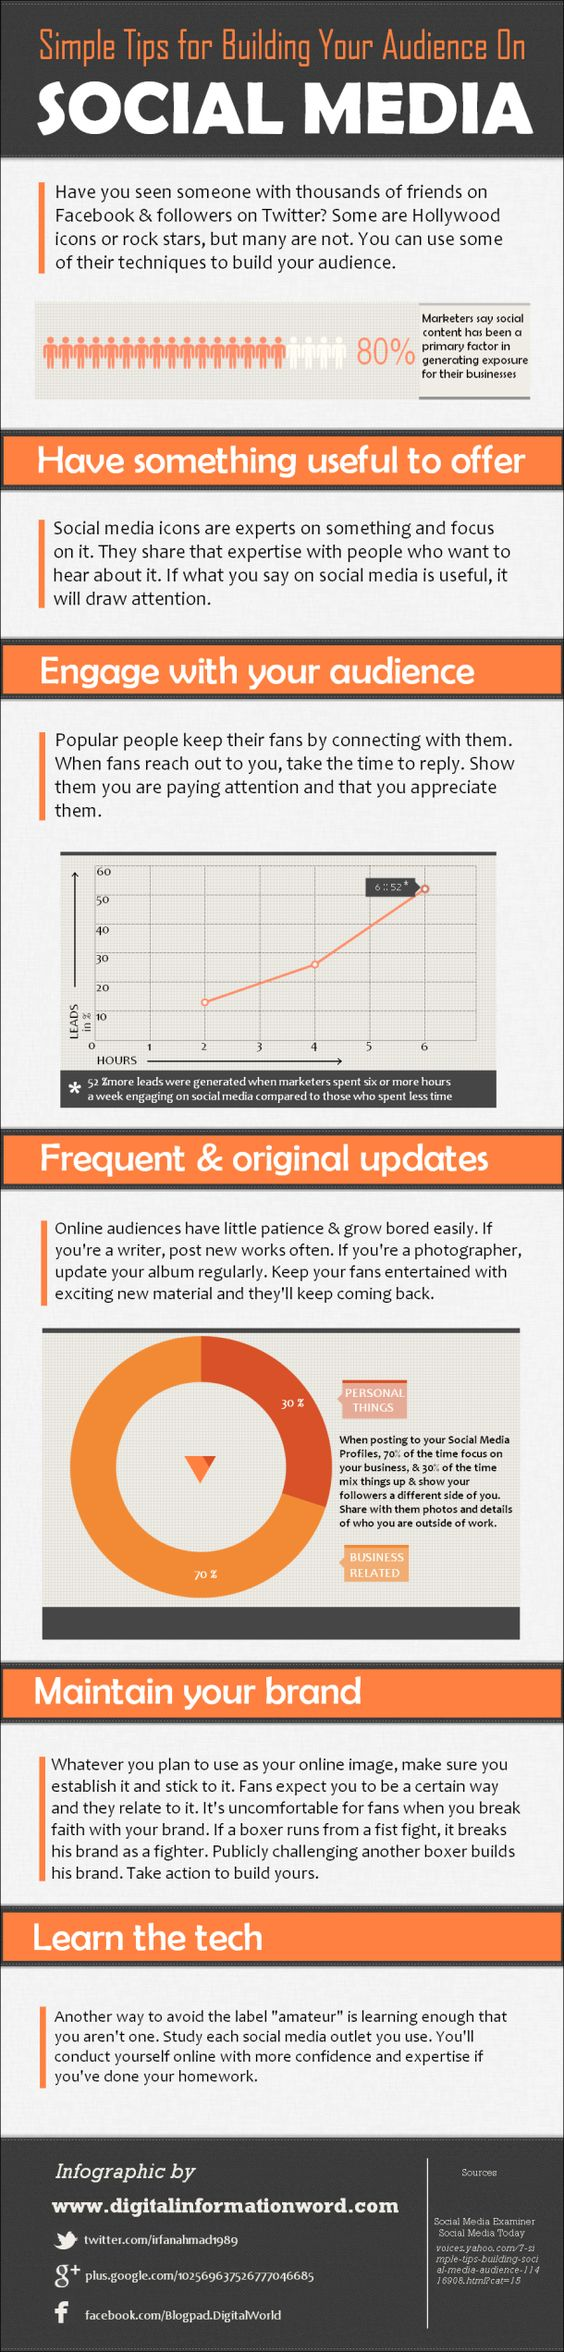 Simple Tips For Building Your Audience On Social Media [INFOGRAPHIC]